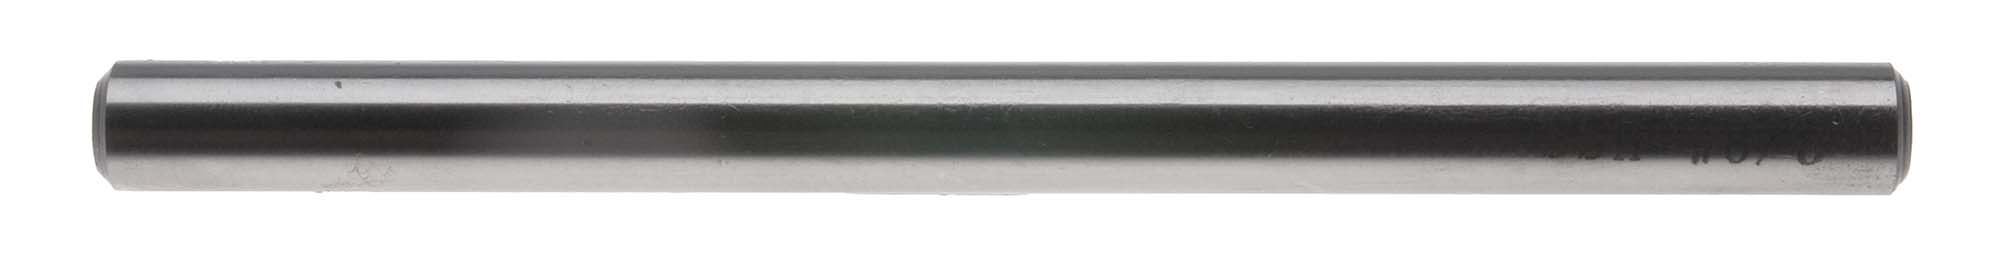 "#46 (.0810"") Jobber Length Drill Blank, High Speed Steel"